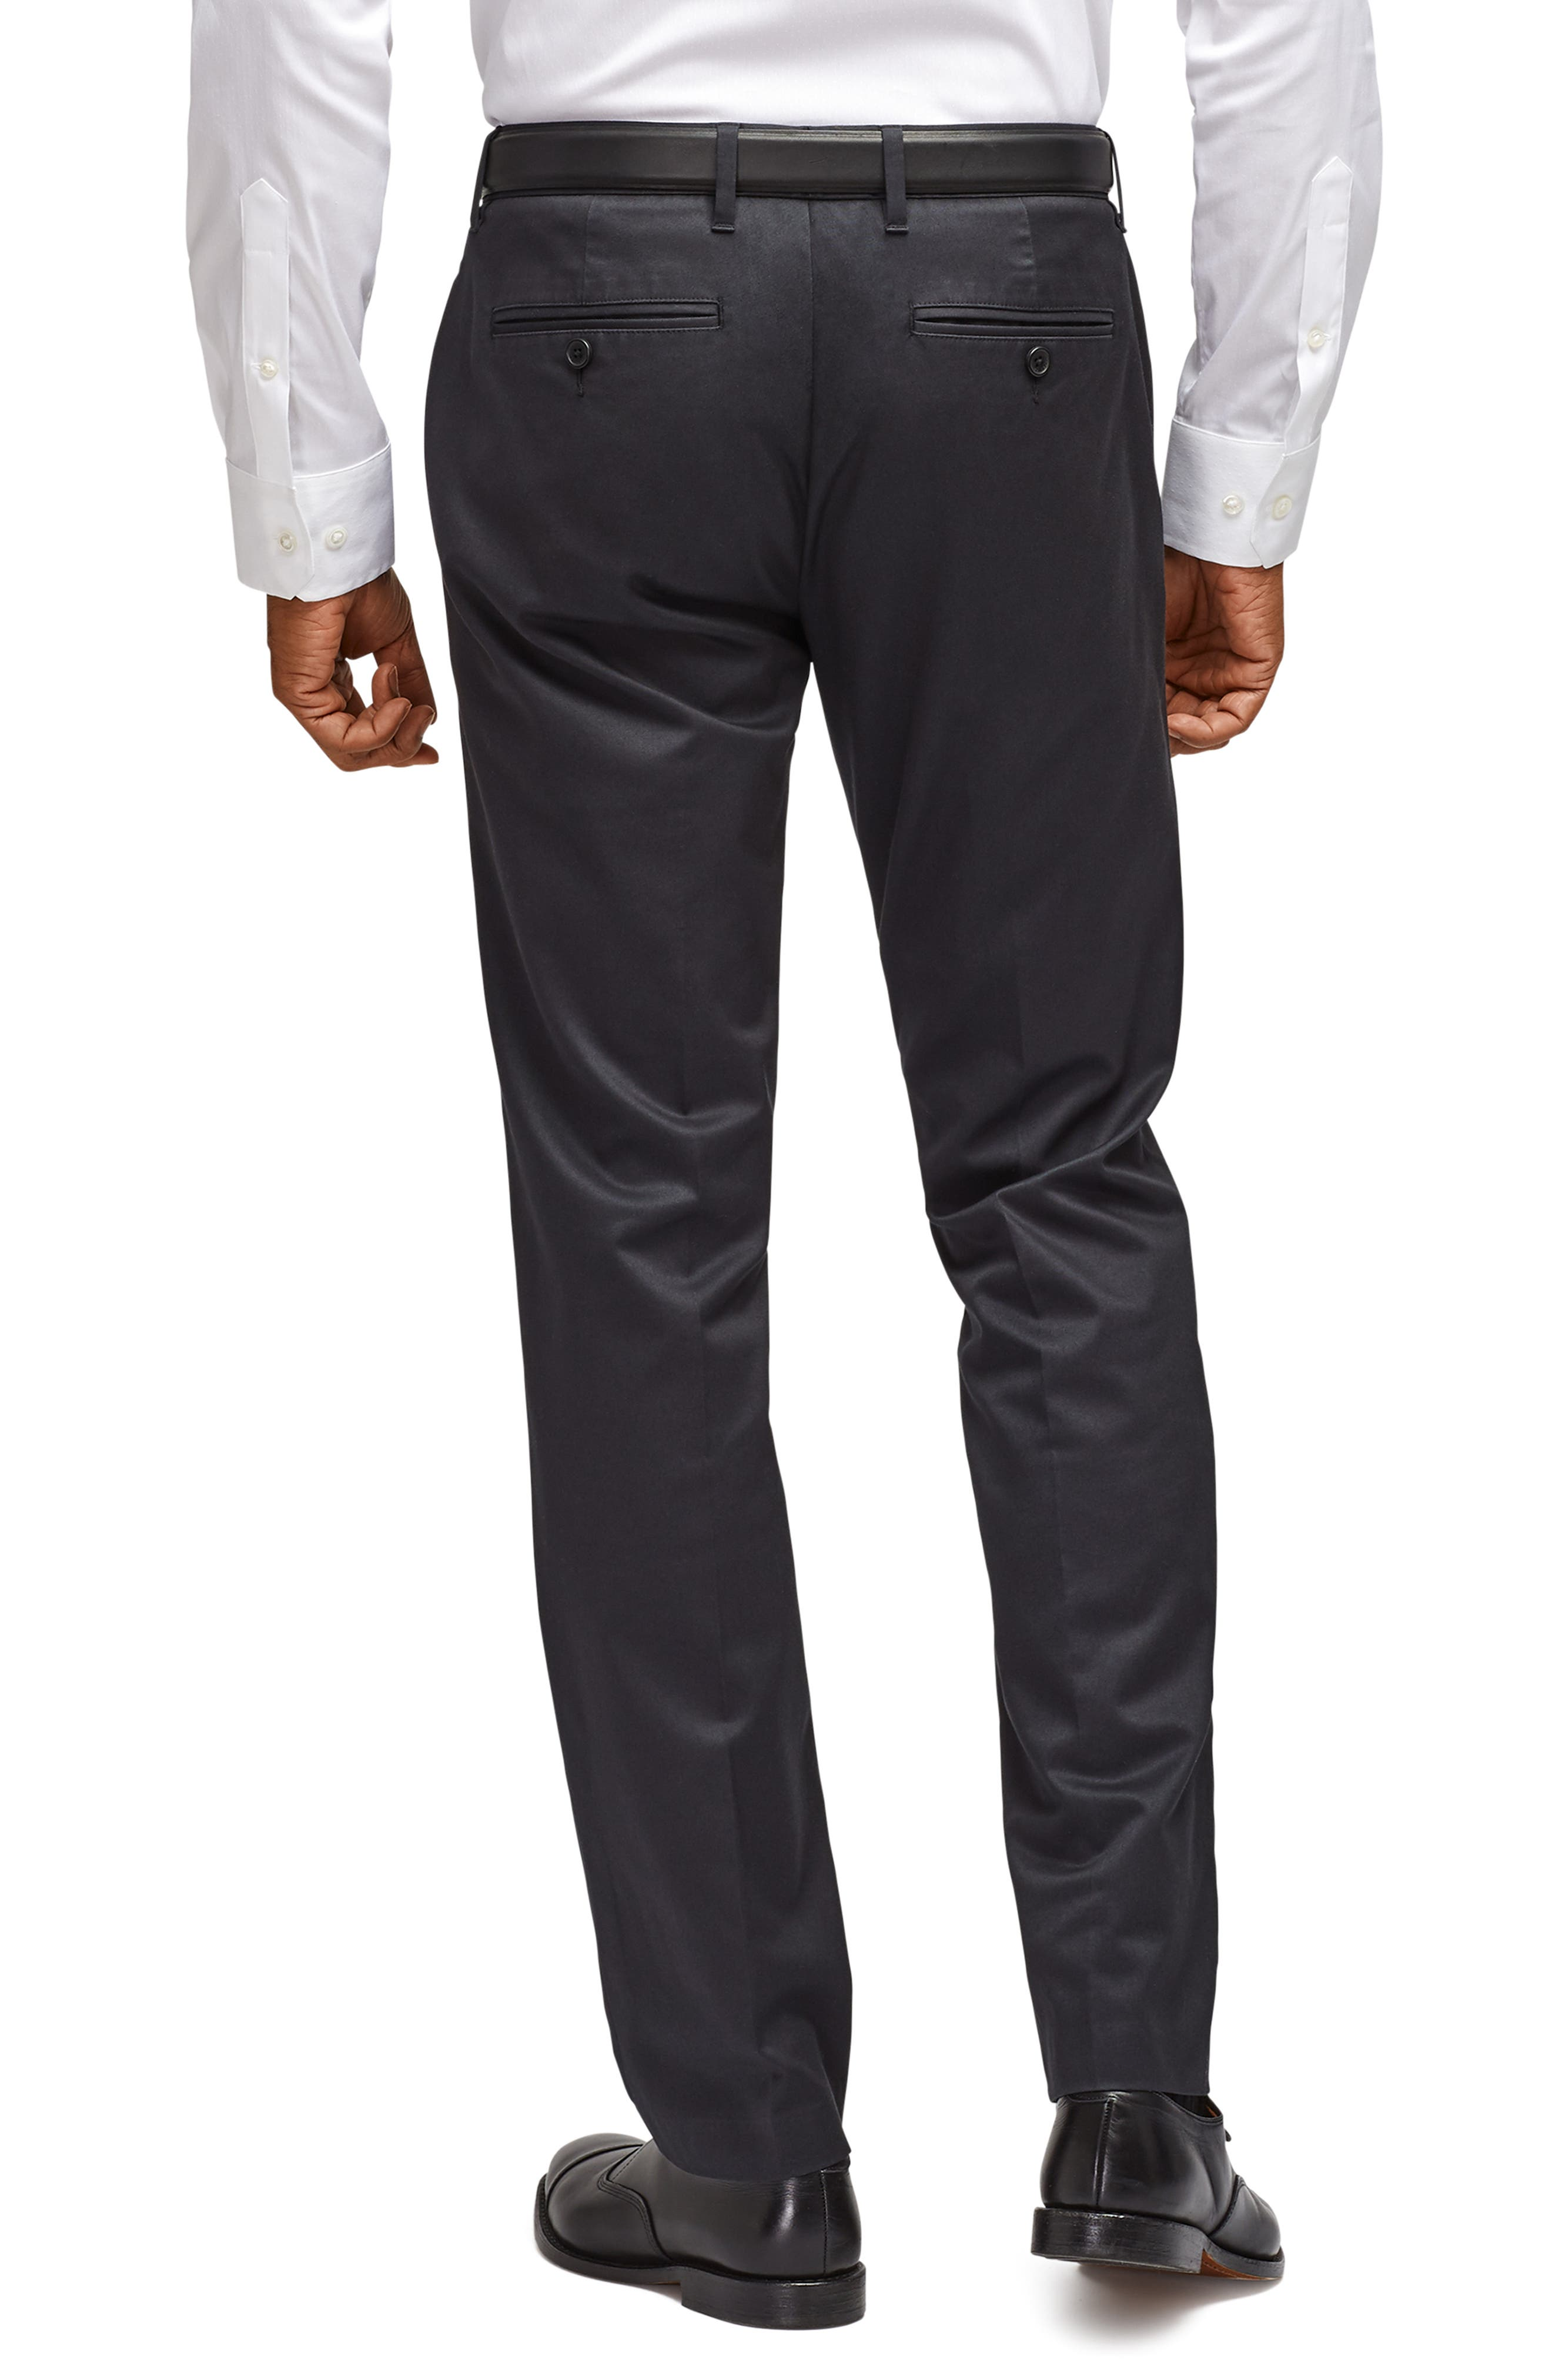 BONOBOS, Weekday Warrior Slim Fit Stretch Dress Pants, Alternate thumbnail 2, color, BLACK